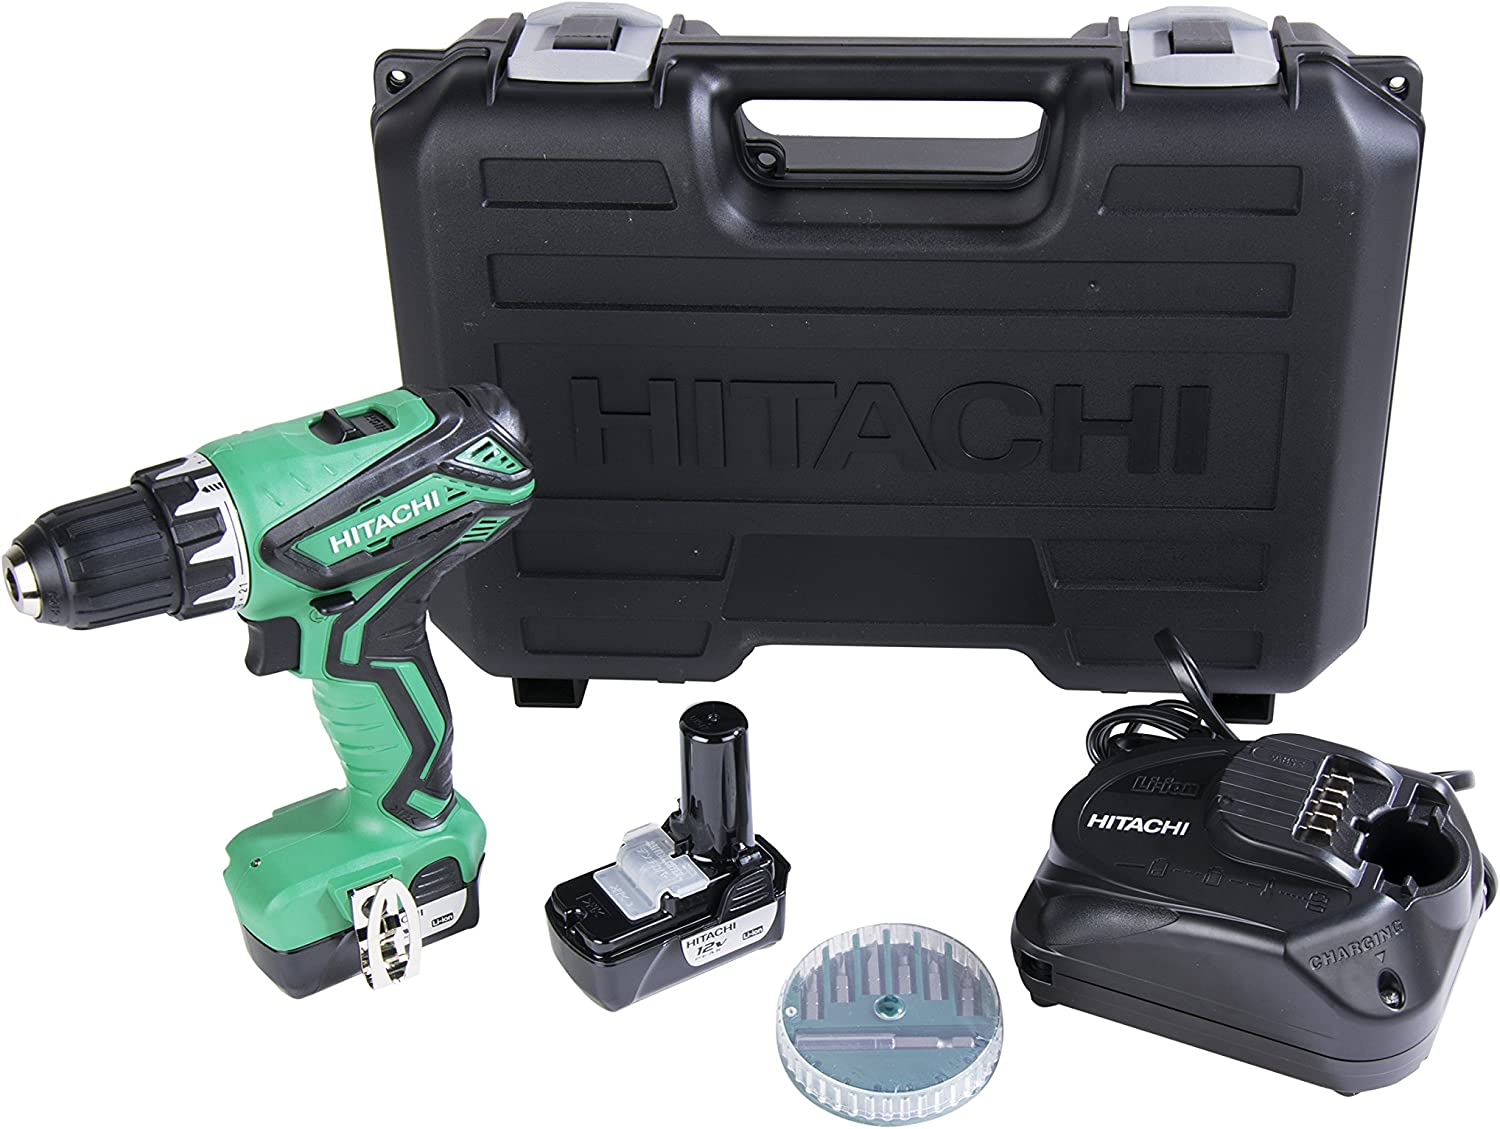 Hitachi DS10DFL2 12-Volt Peak Cordless Lithium Ion Compact Drill Driver Kit Lifetime Tool Warranty